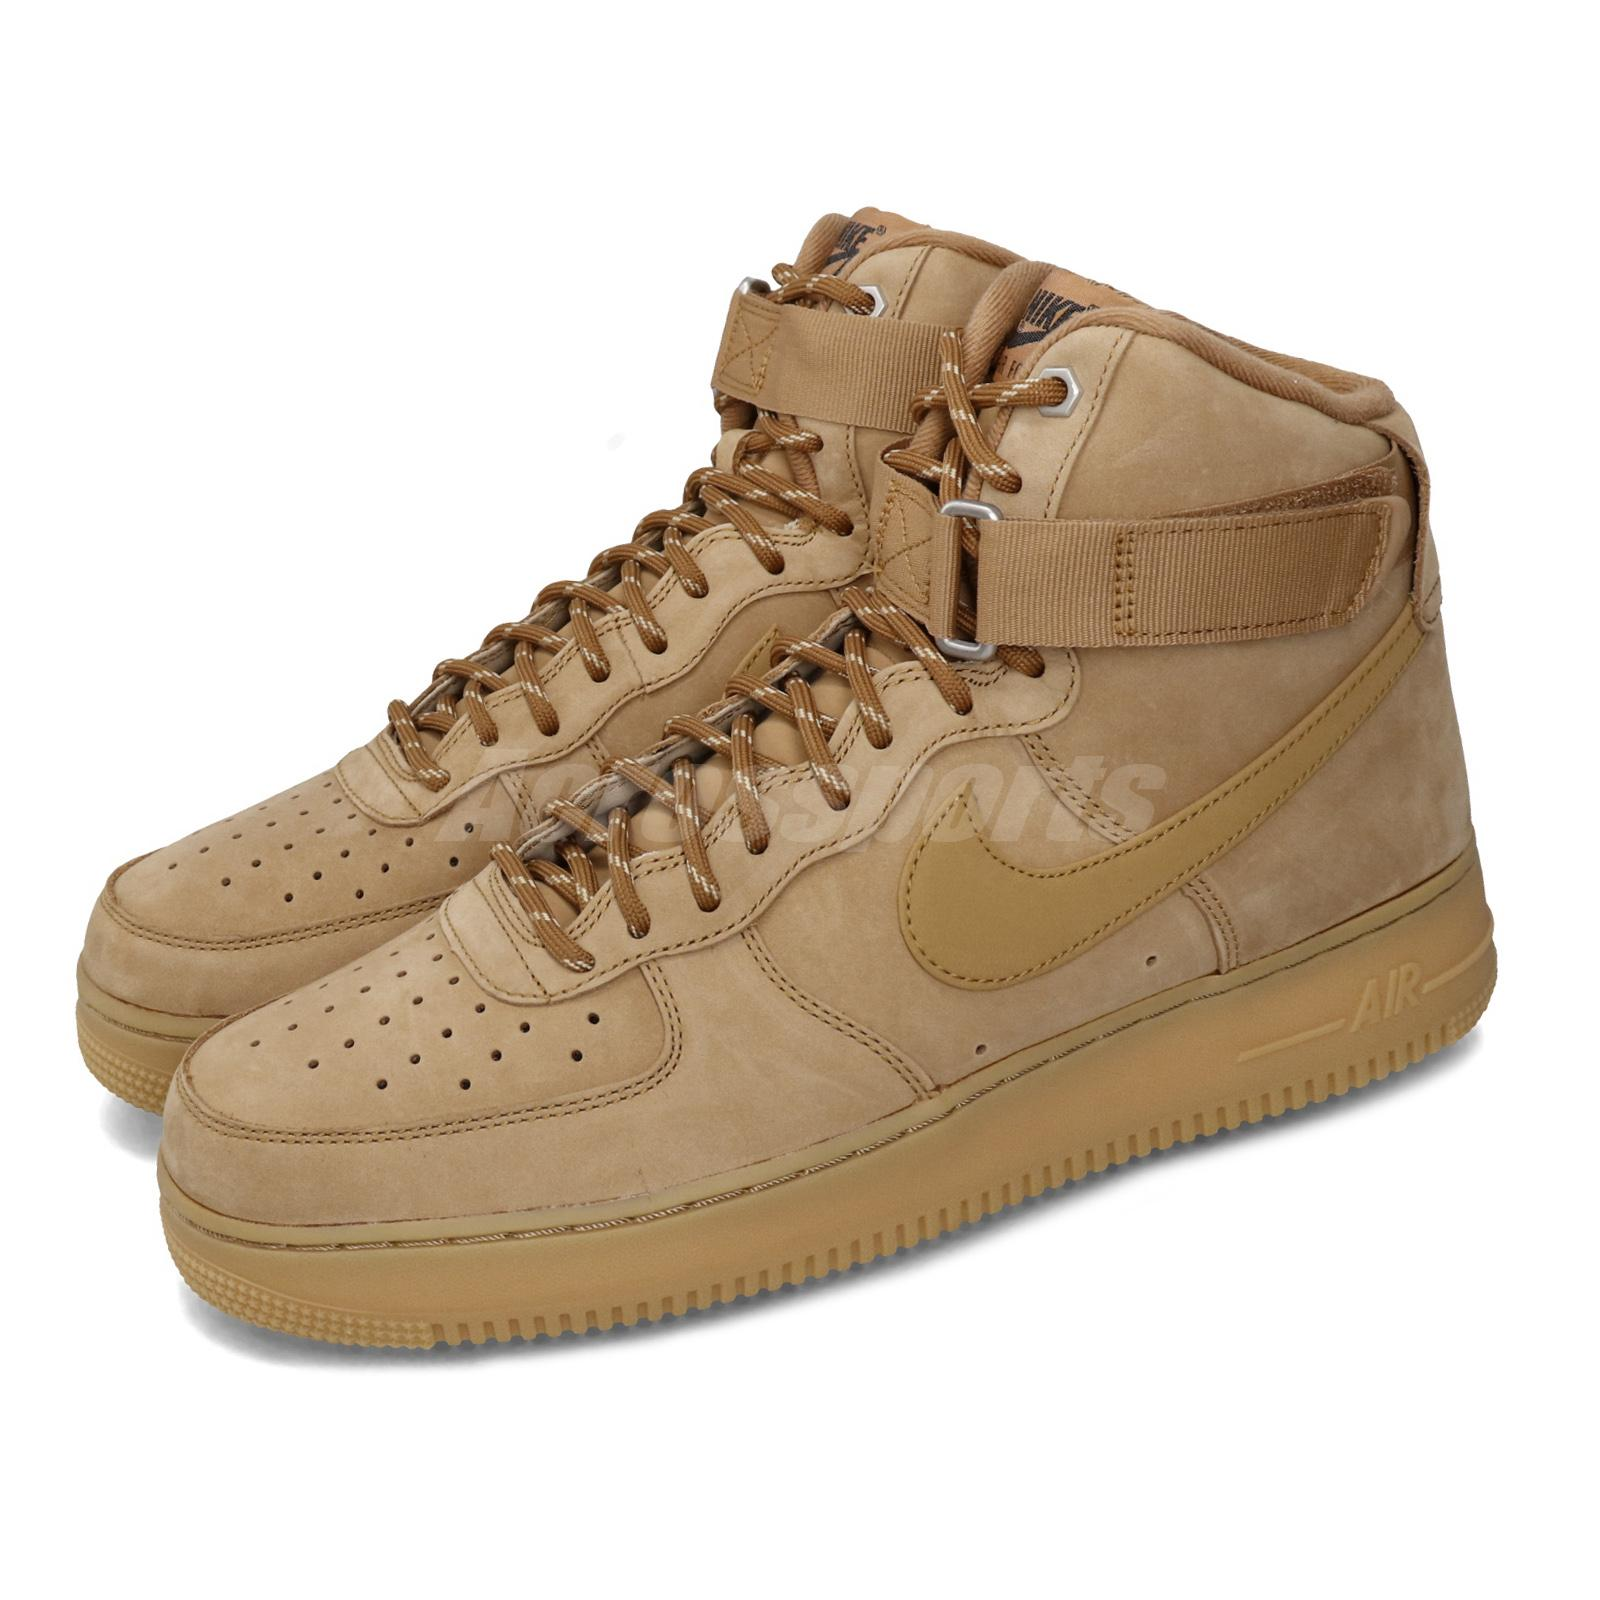 Black Nike Air Force 1 High 07 LV8 WB shoes for Mens Shoes